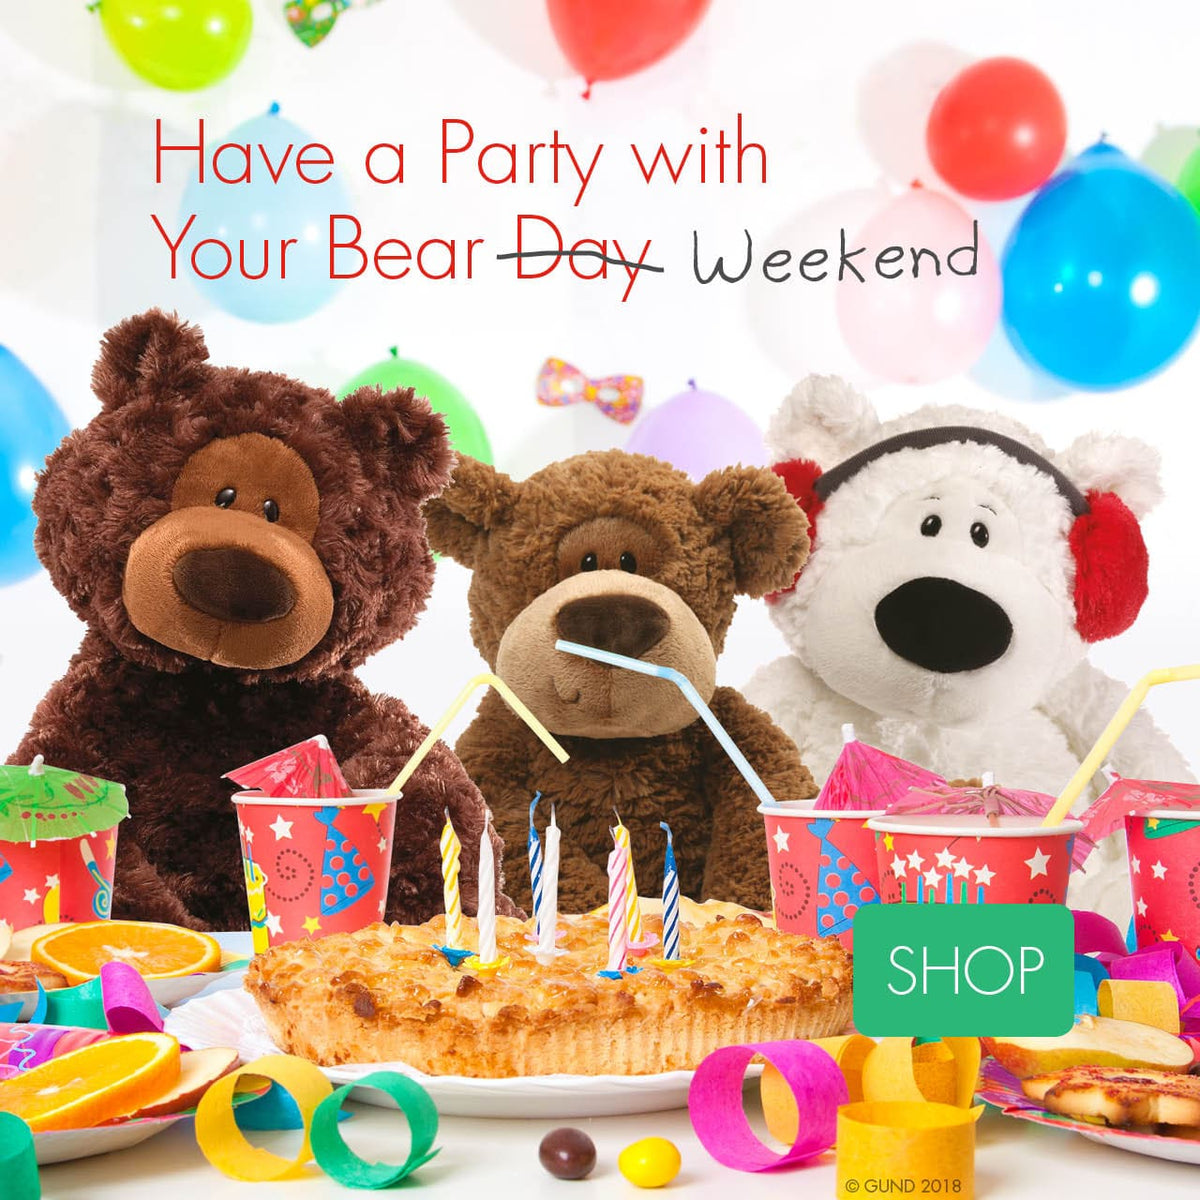 Have a Party with Your Bear Weekend!